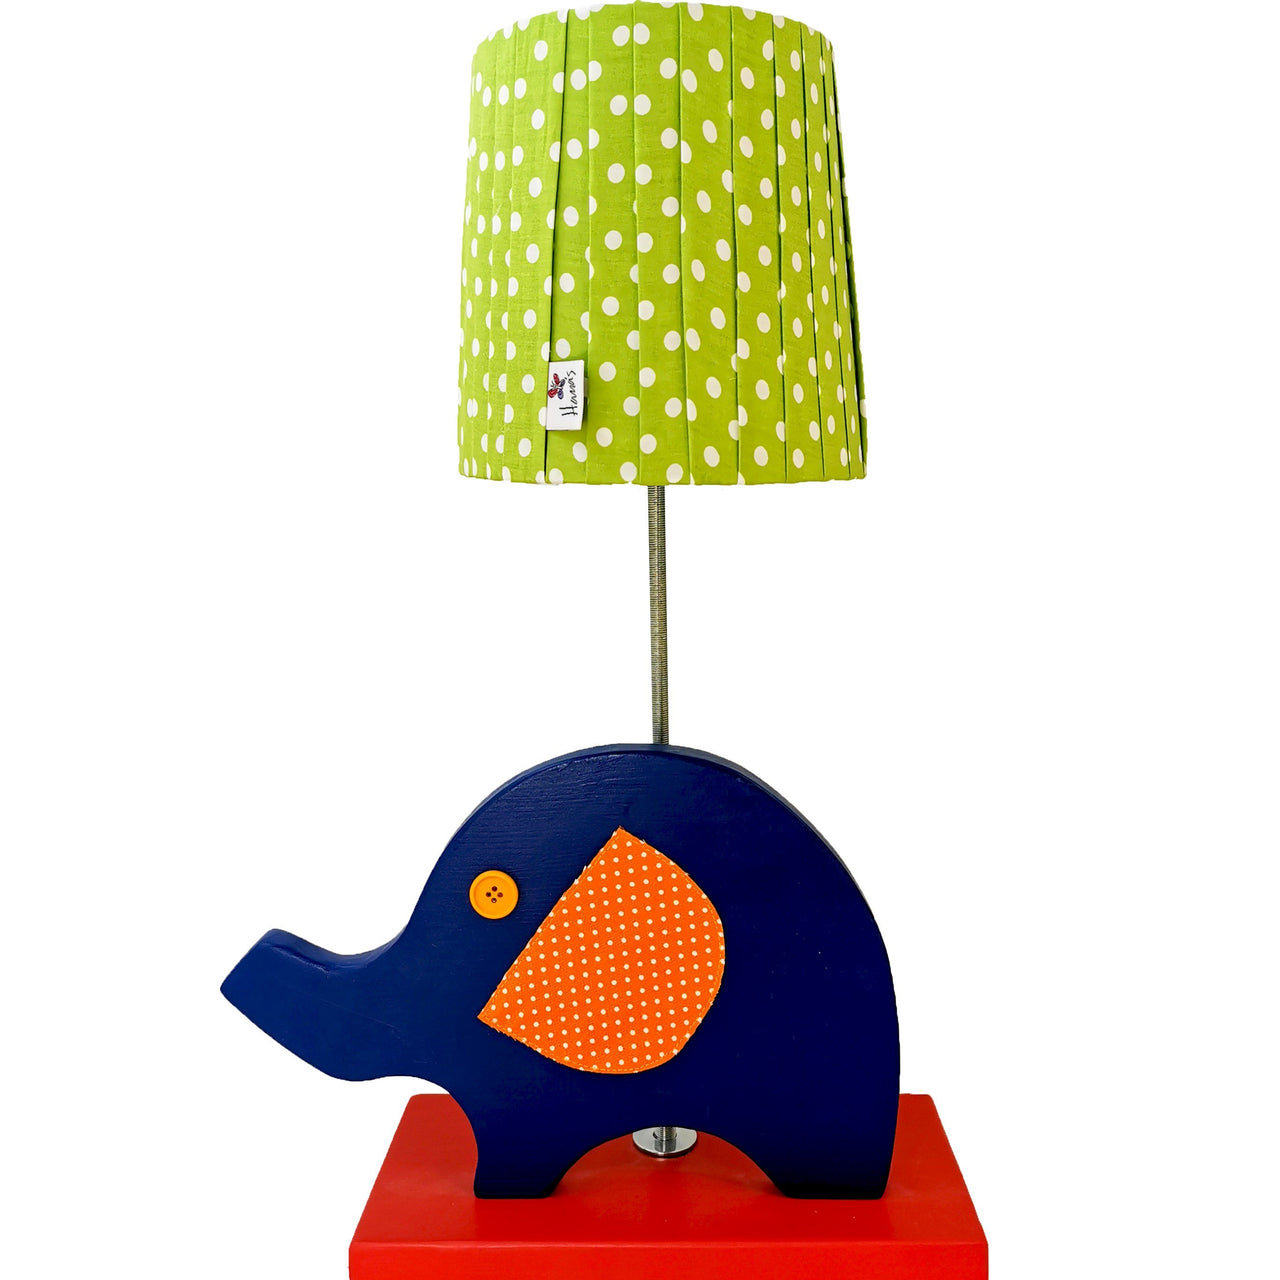 Elephant Side Lamp with Wooden Base - Rooms for Rascals, a Leafy Lanes Retailers Ltd business